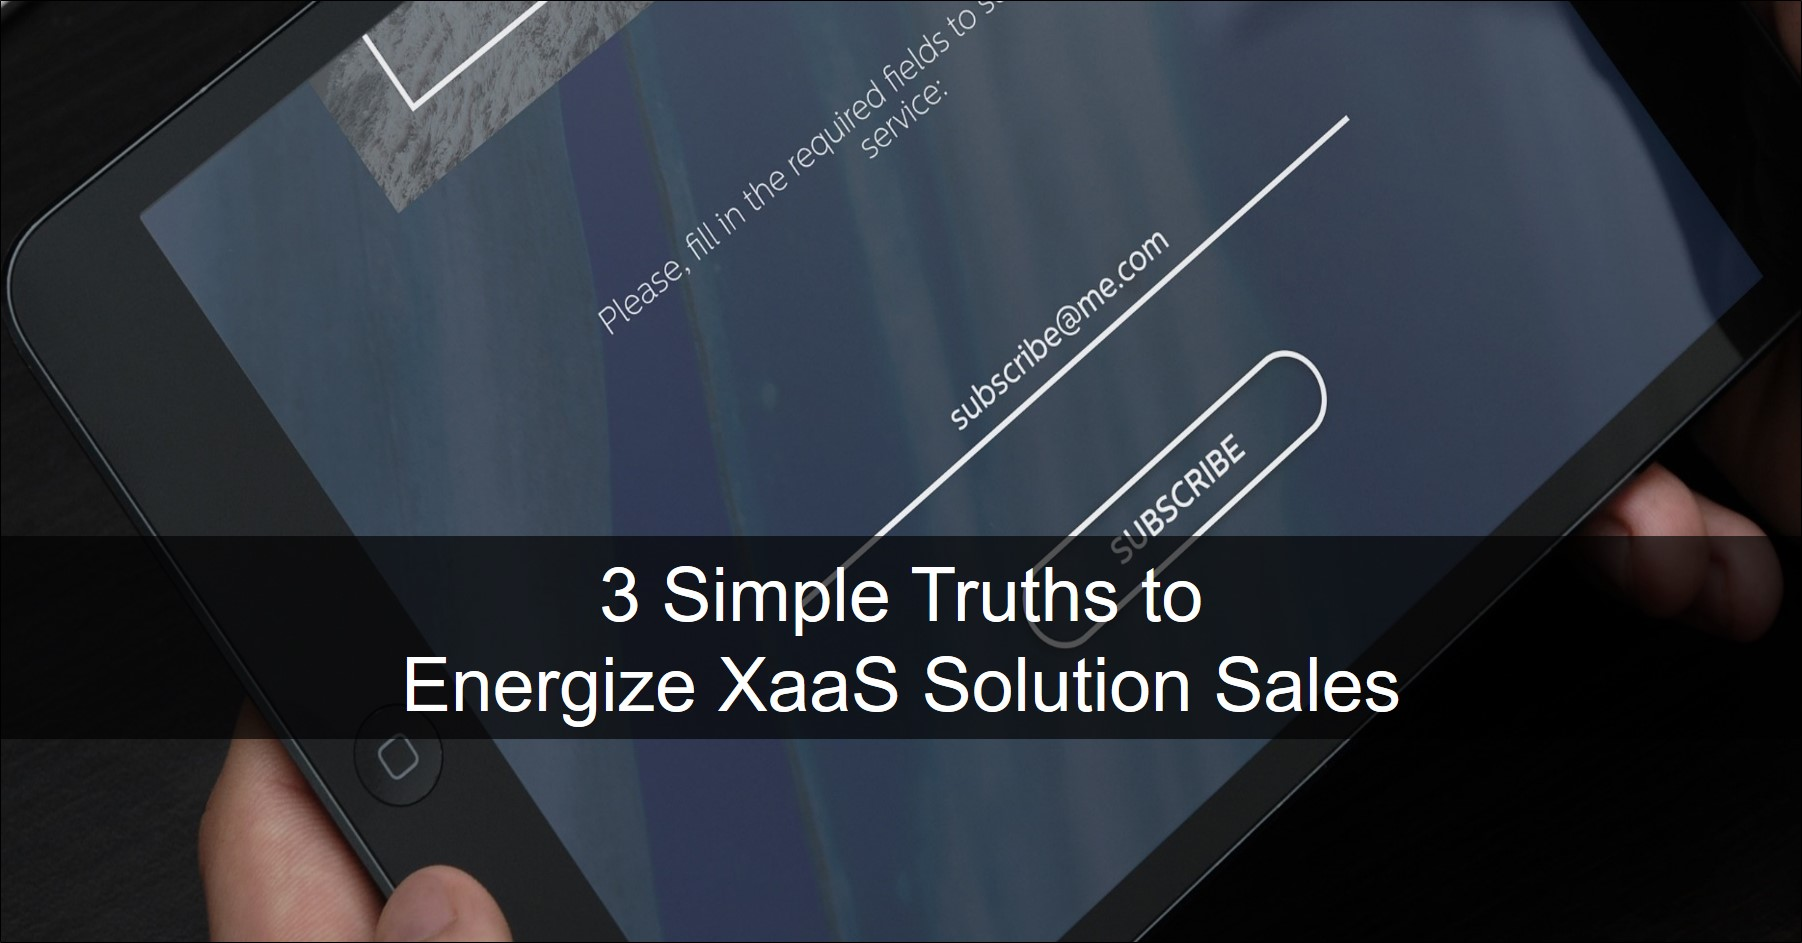 XaaS offerings value selling approach